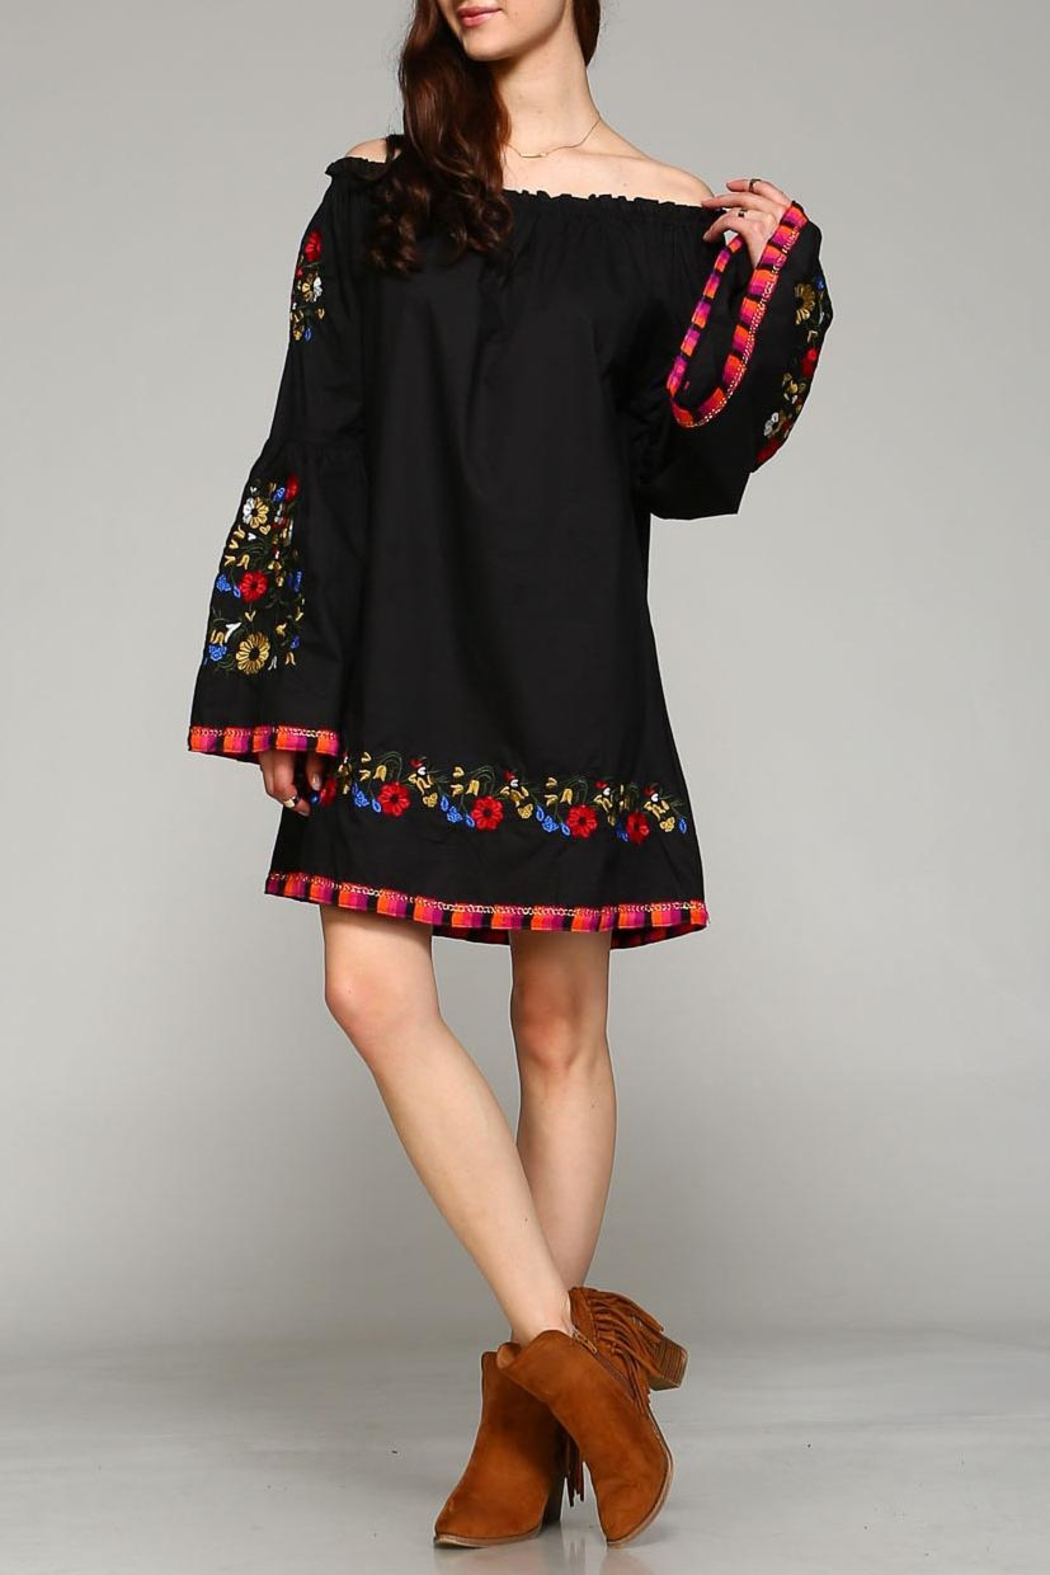 Velzera Floral-Embroidered Off-Shoulder Dress - Main Image